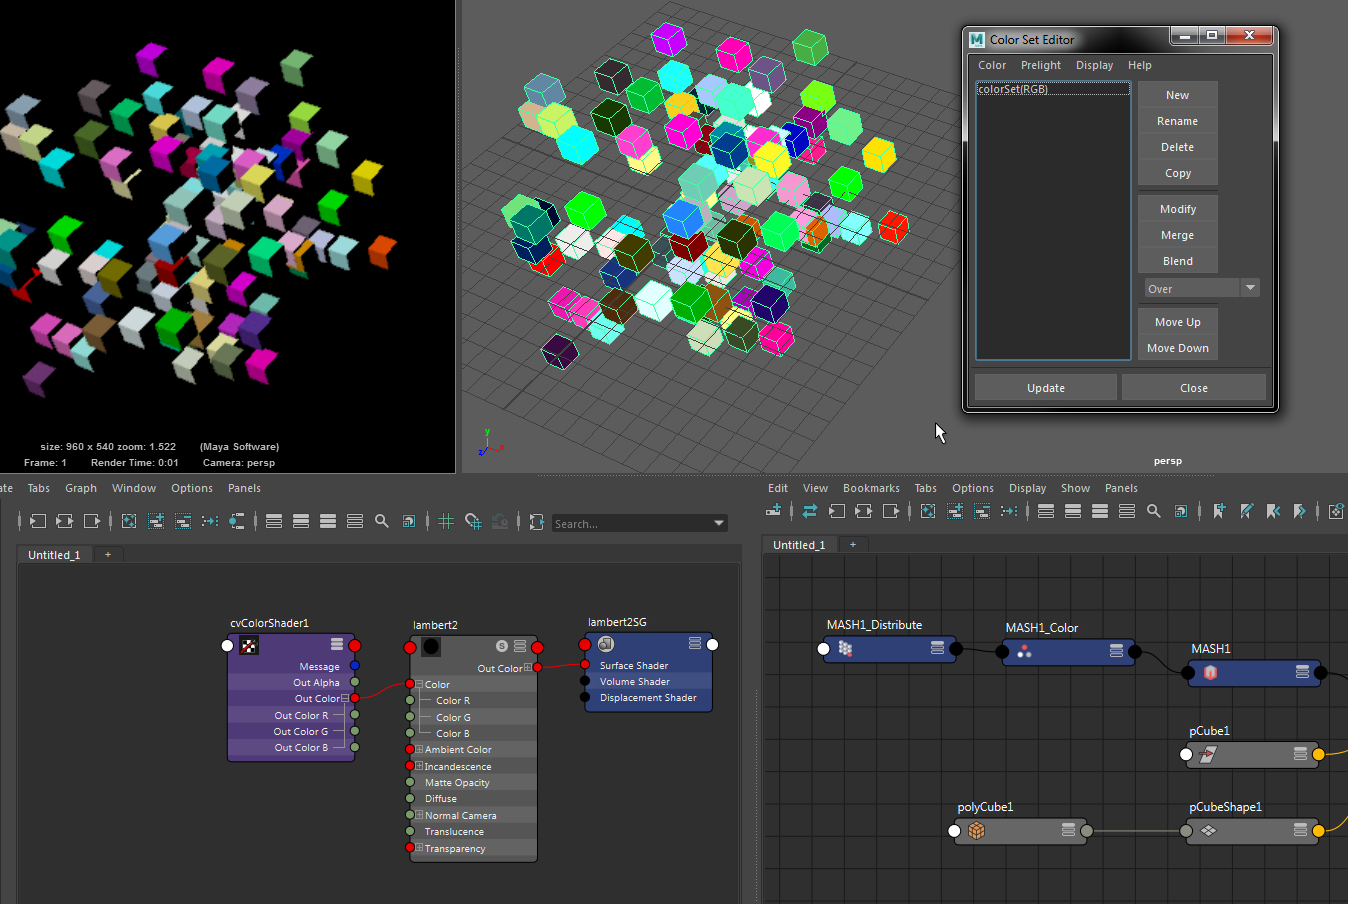 Solved: How do you render vertex colors in maya software